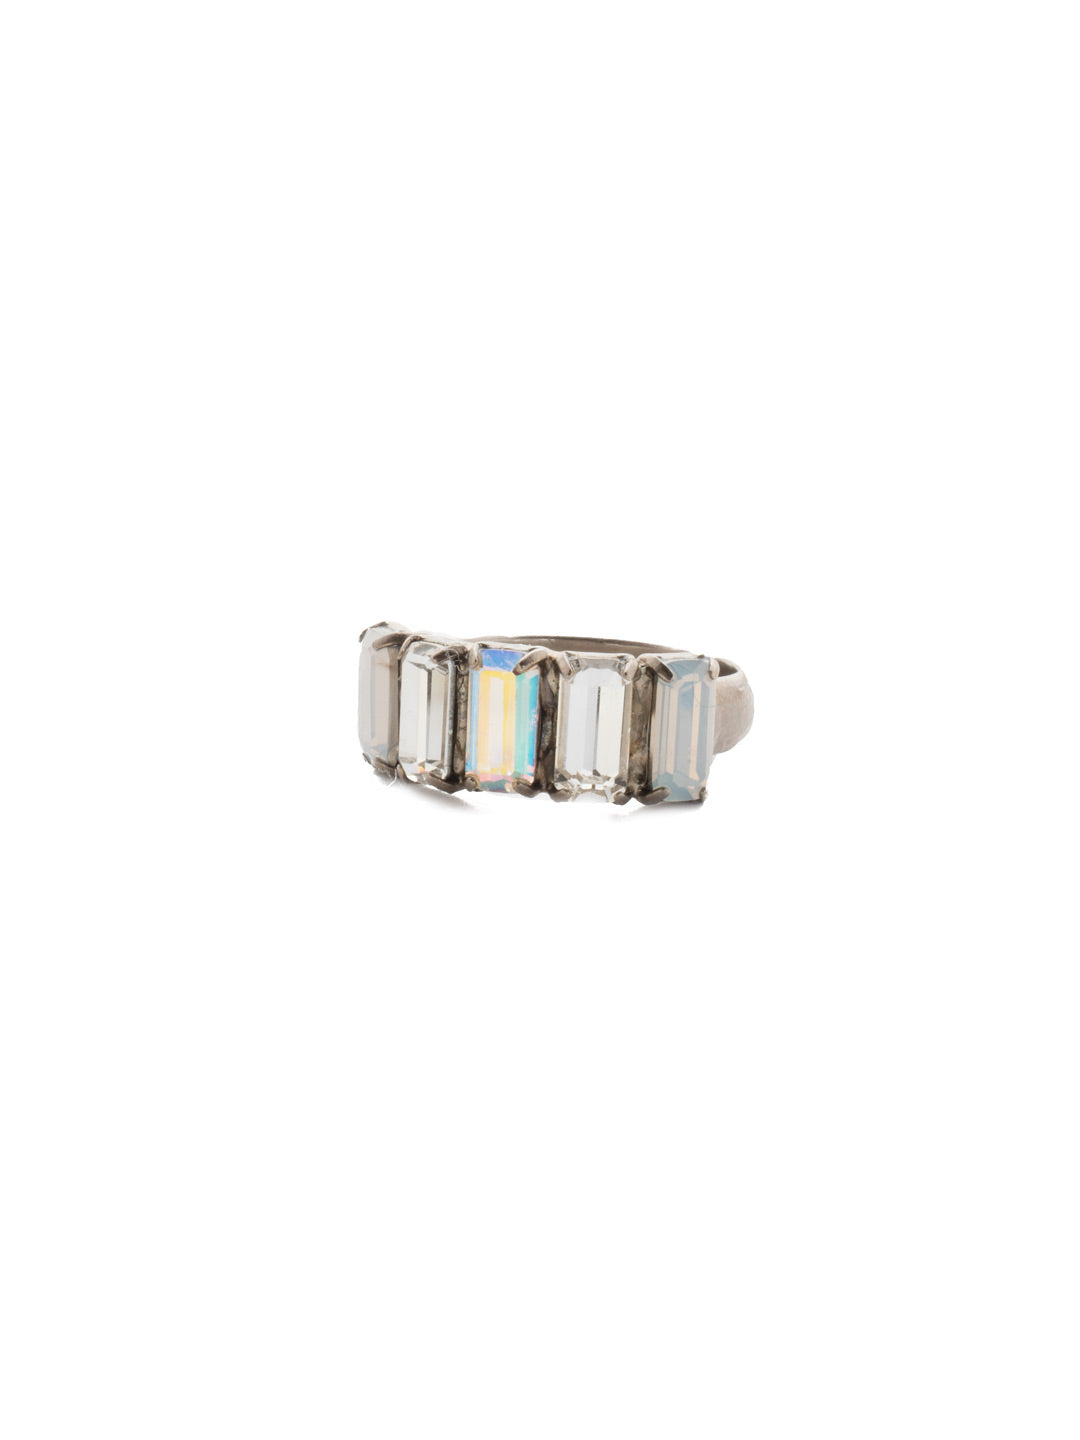 Arden Band Ring - REF29ASGLC